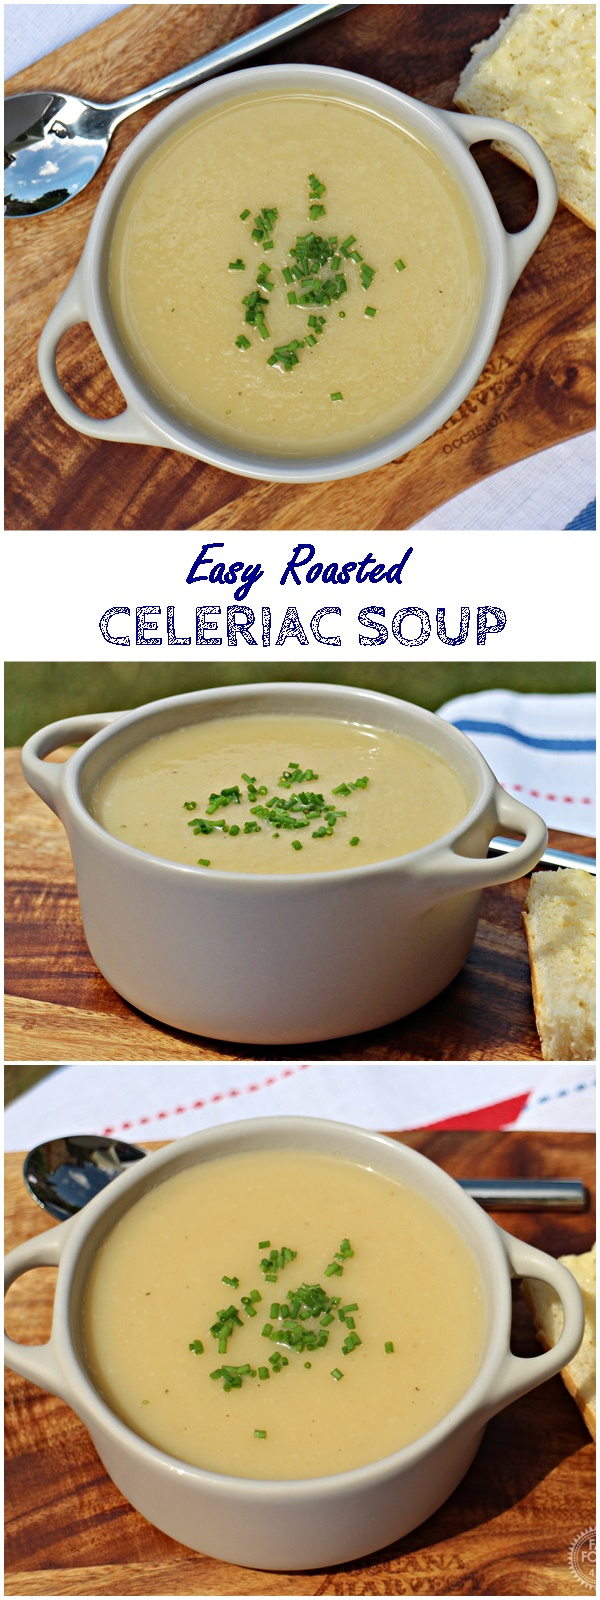 Easy Roasted Celeriac Soup - Fab Food 4 All